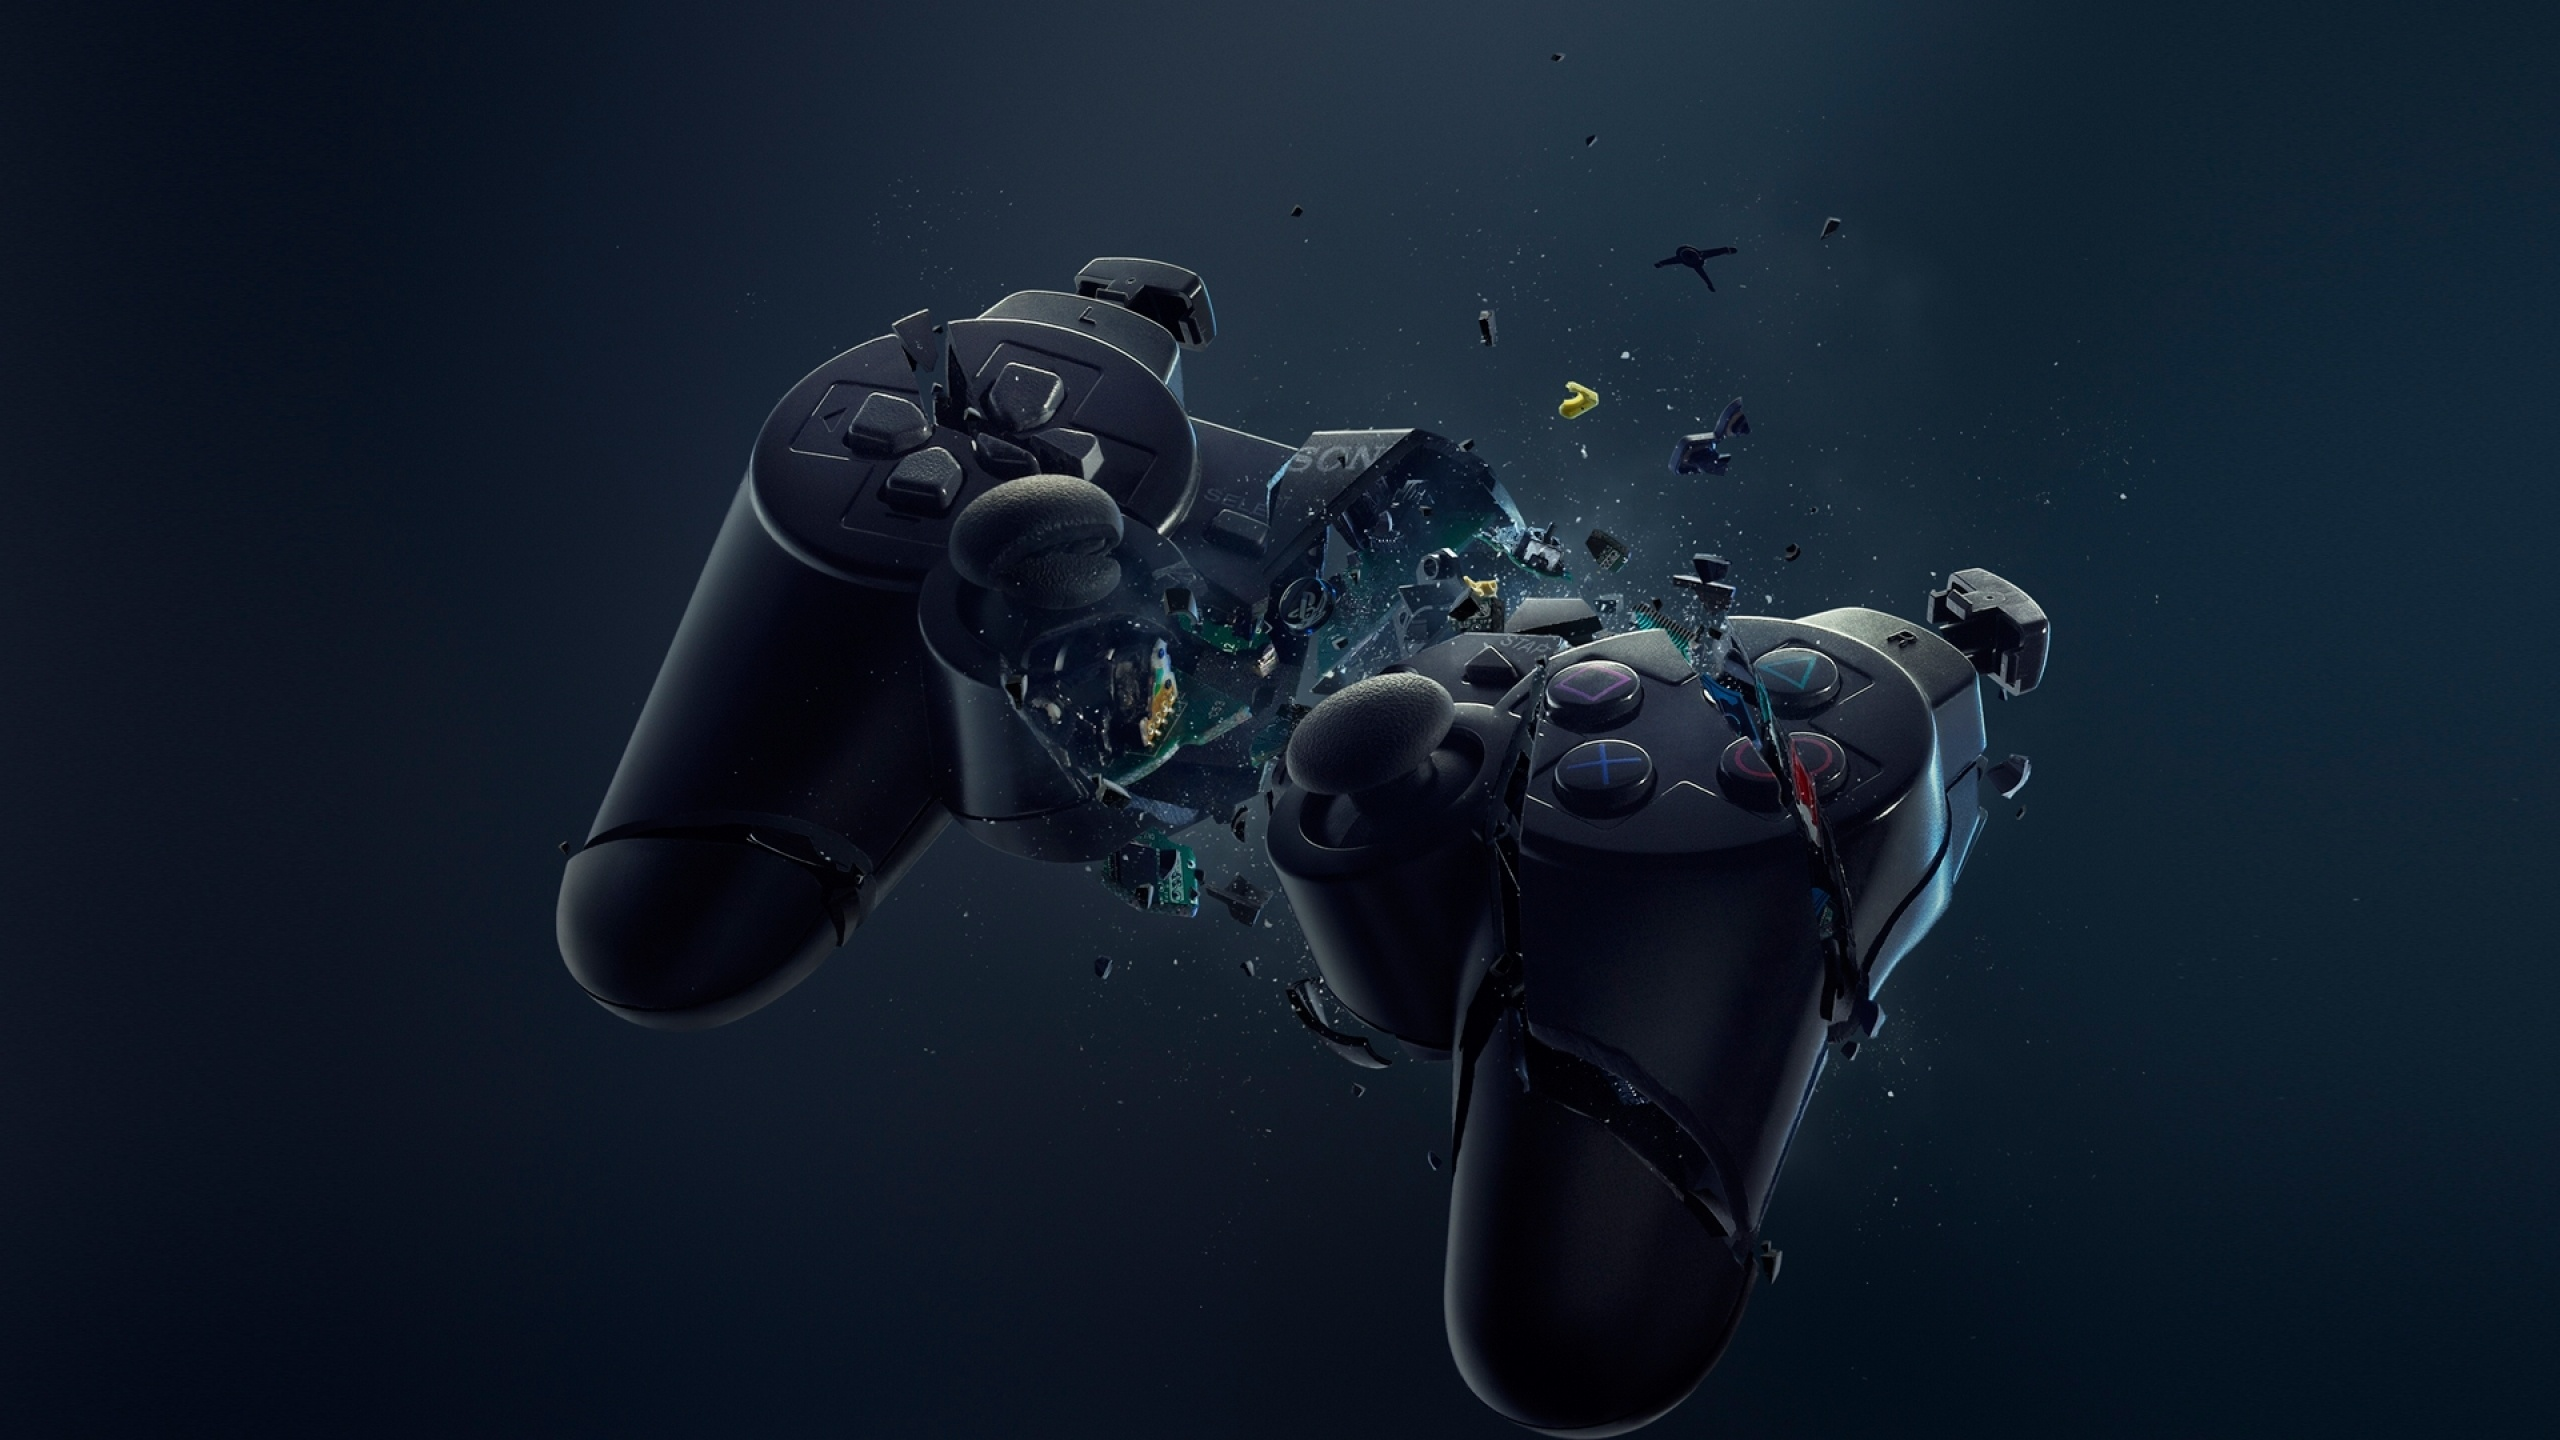 gaming wallpapers 2560 x 1440 wallpapersafari